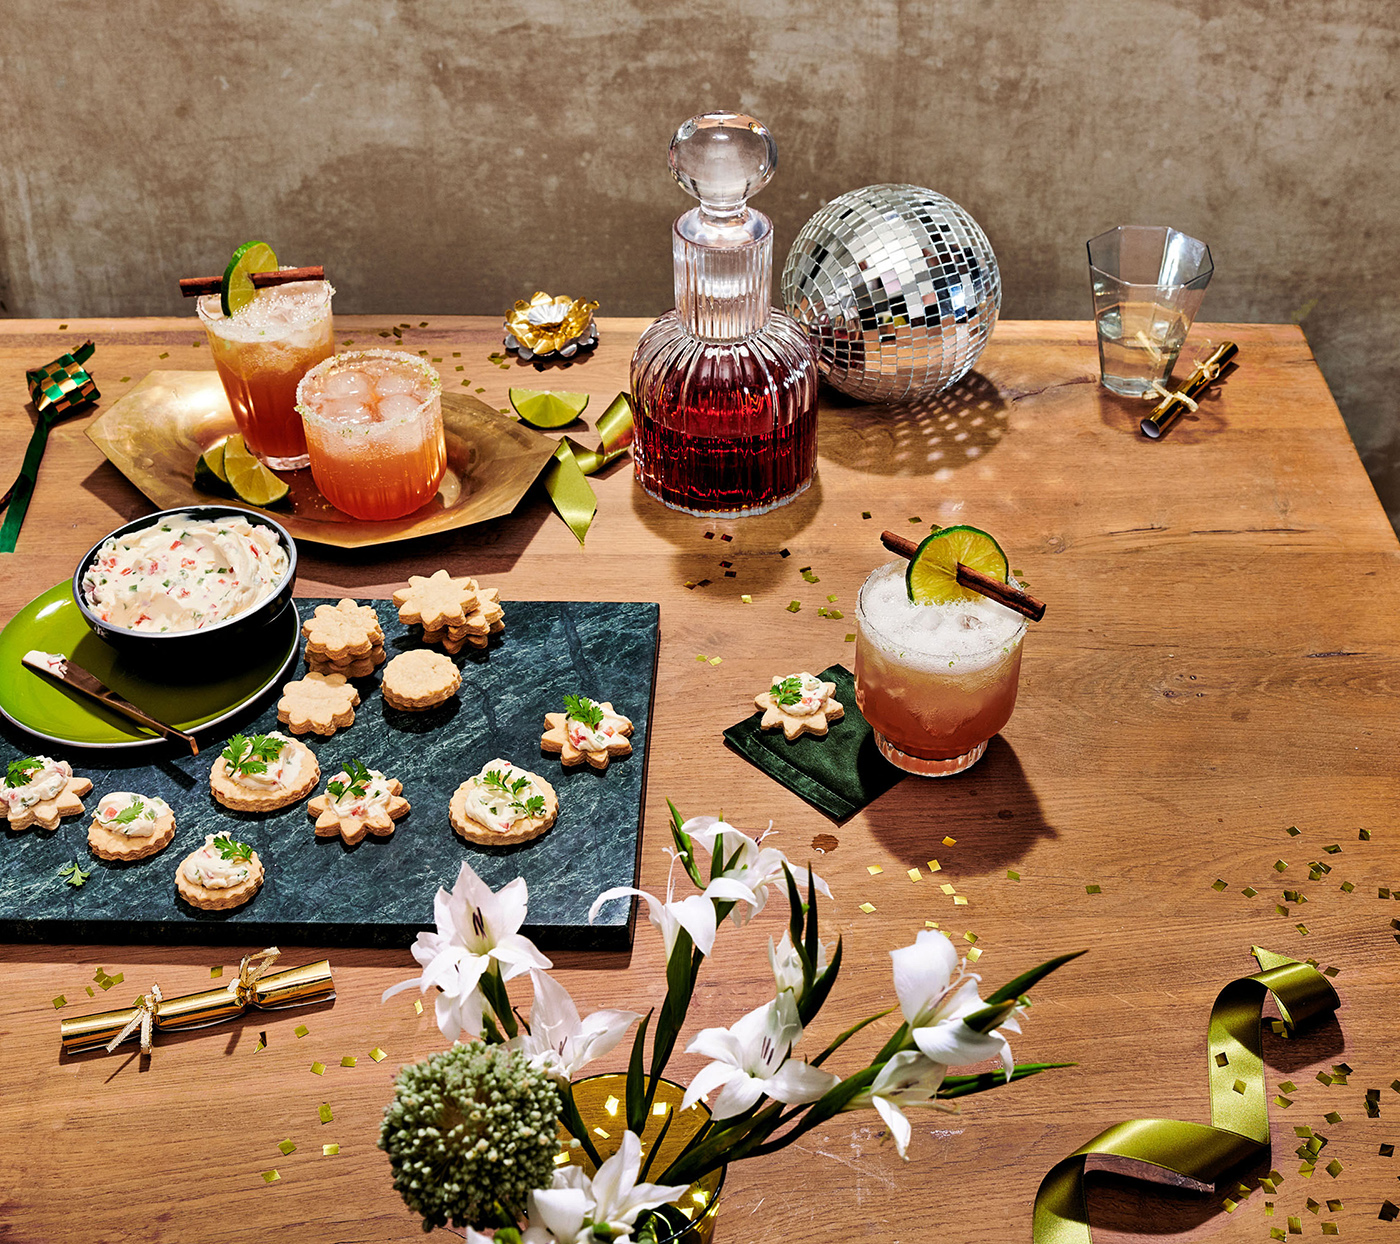 New Year's table with cocktails, appetizers, and decor